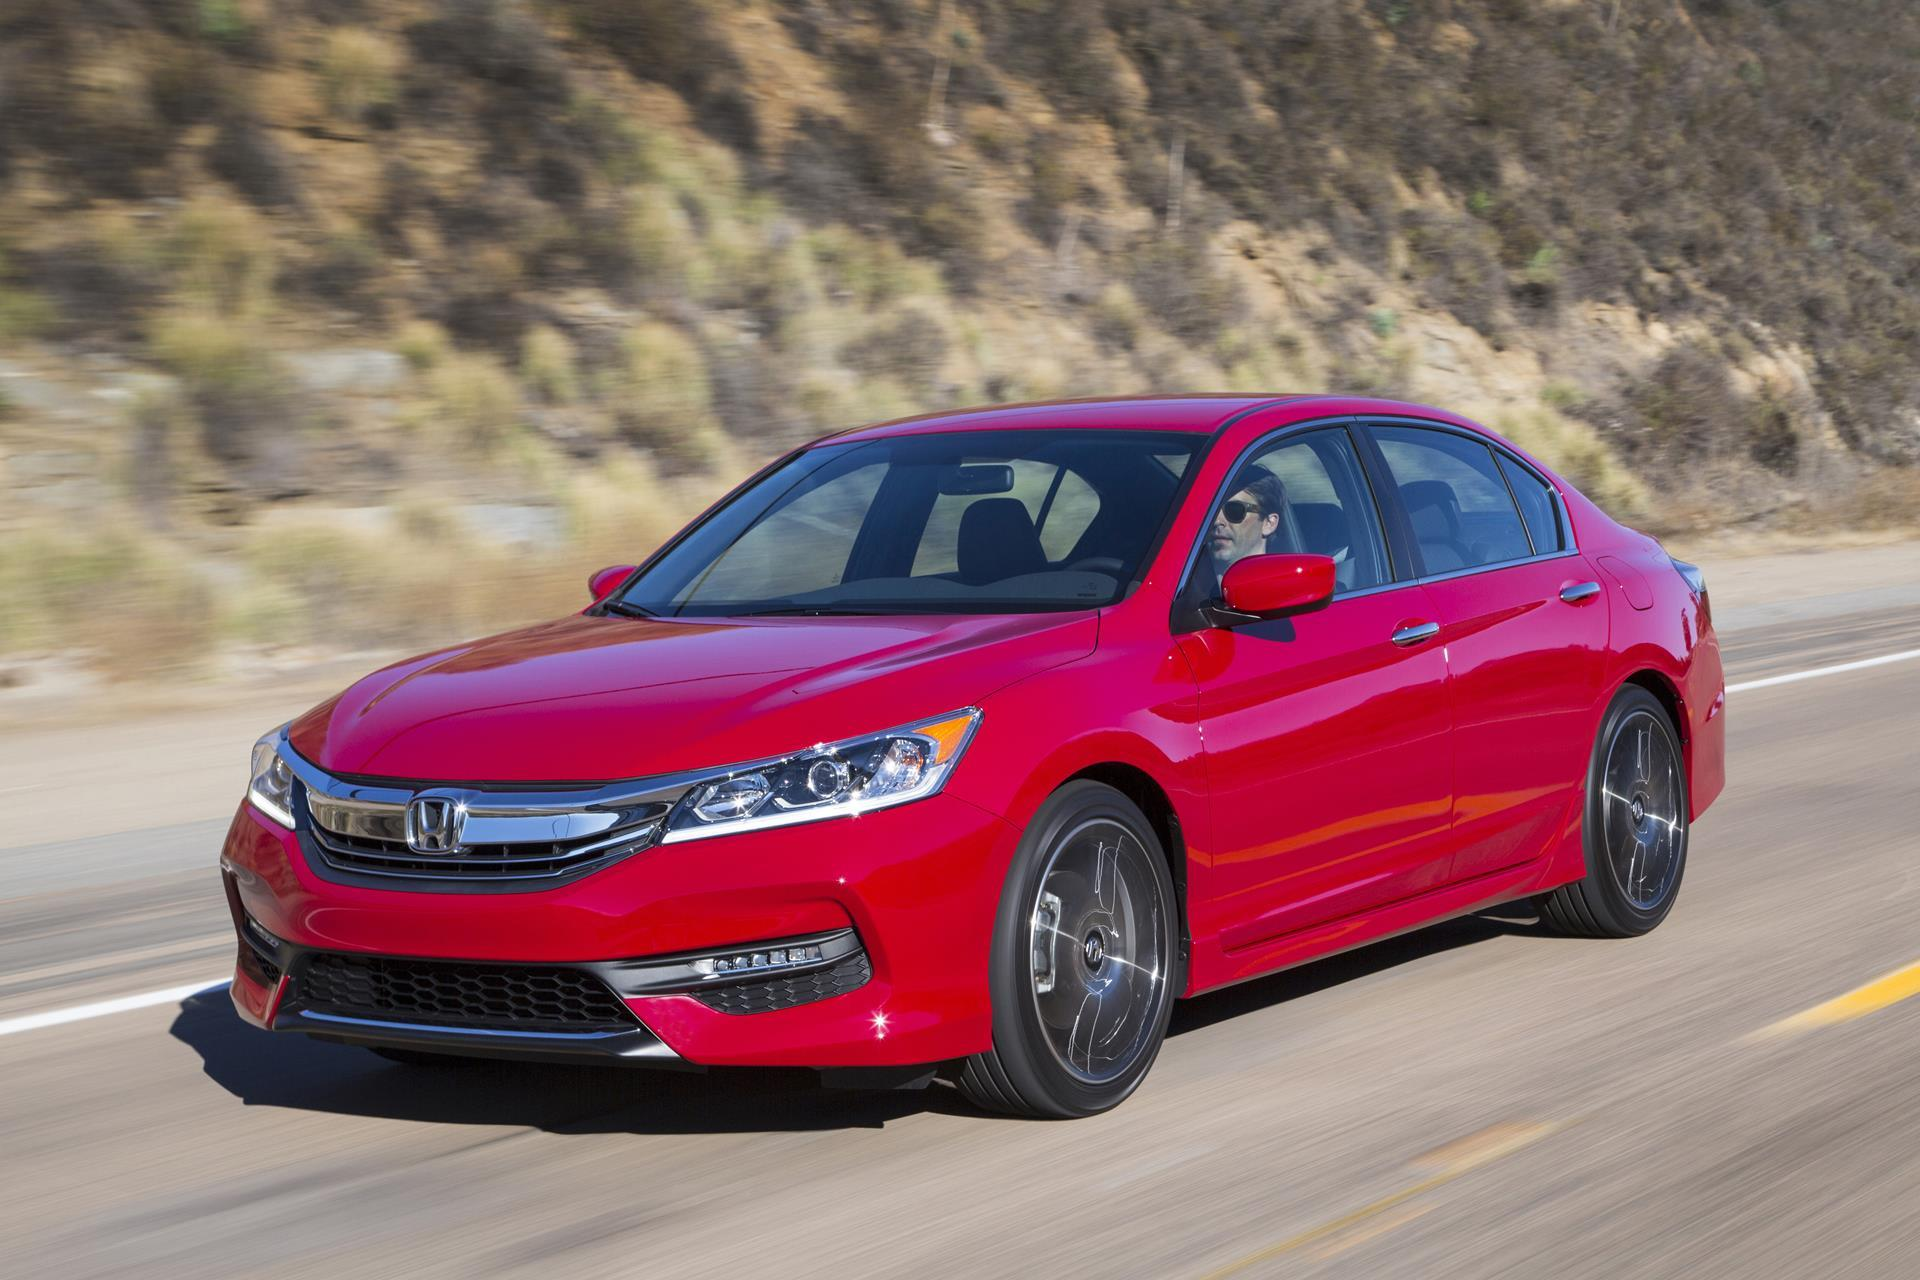 Honda Accord Sport Special Edition pictures and wallpaper